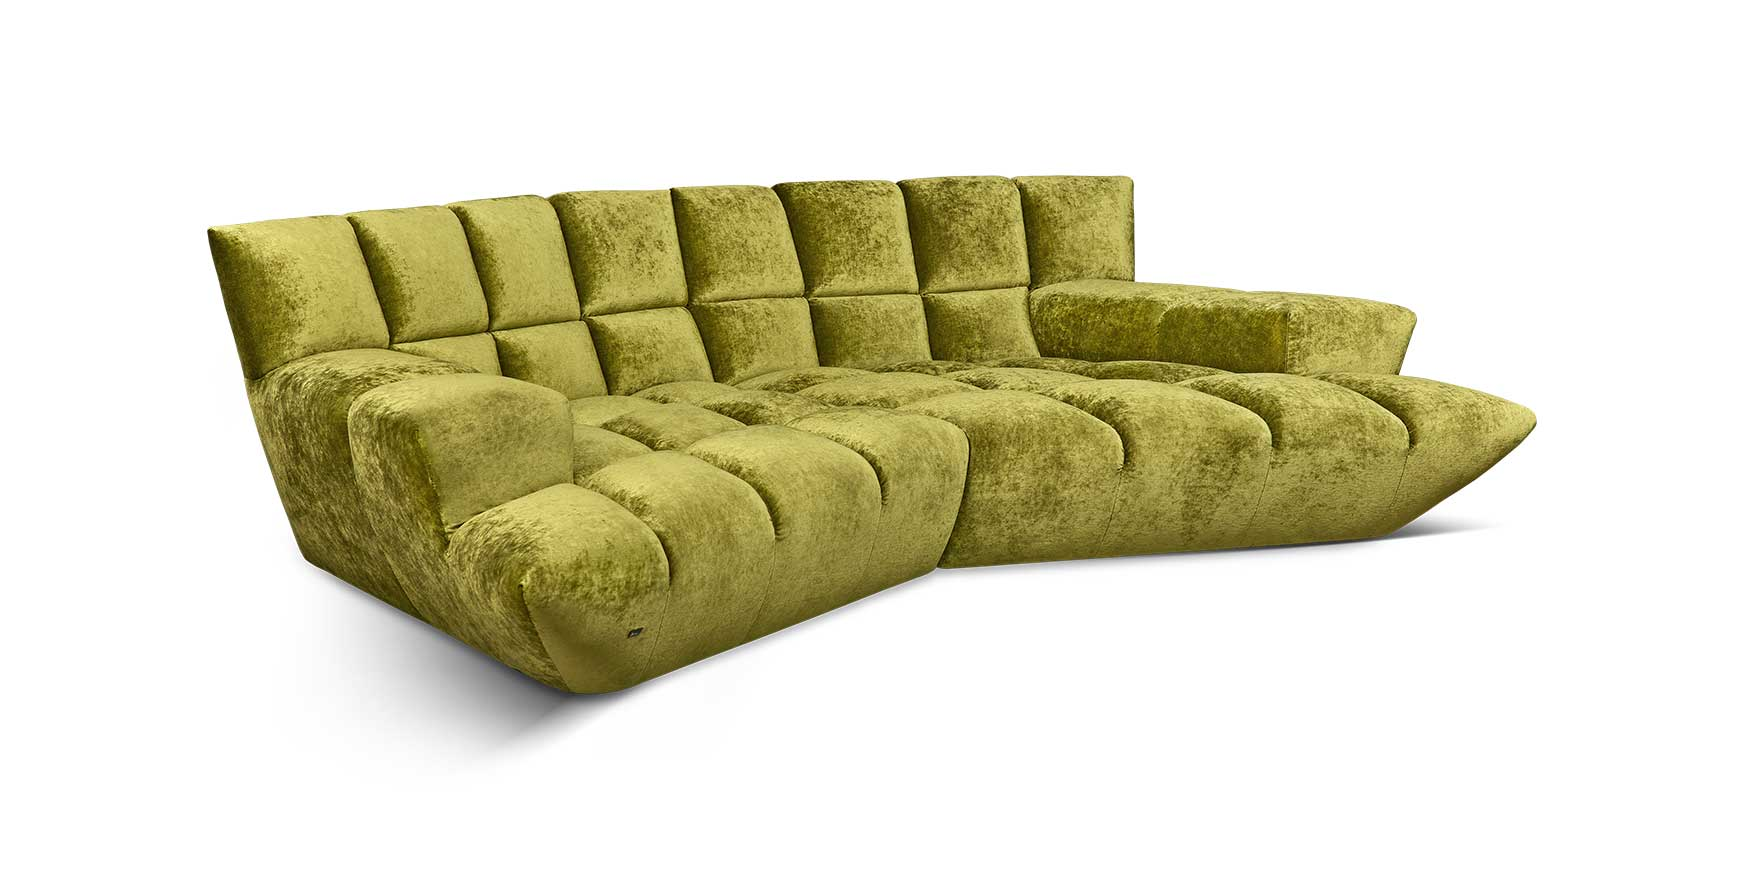 Bretz Cloud Bretz Cloud 7 G154 Top Angebote An Bretz Cloud 7 Sofas